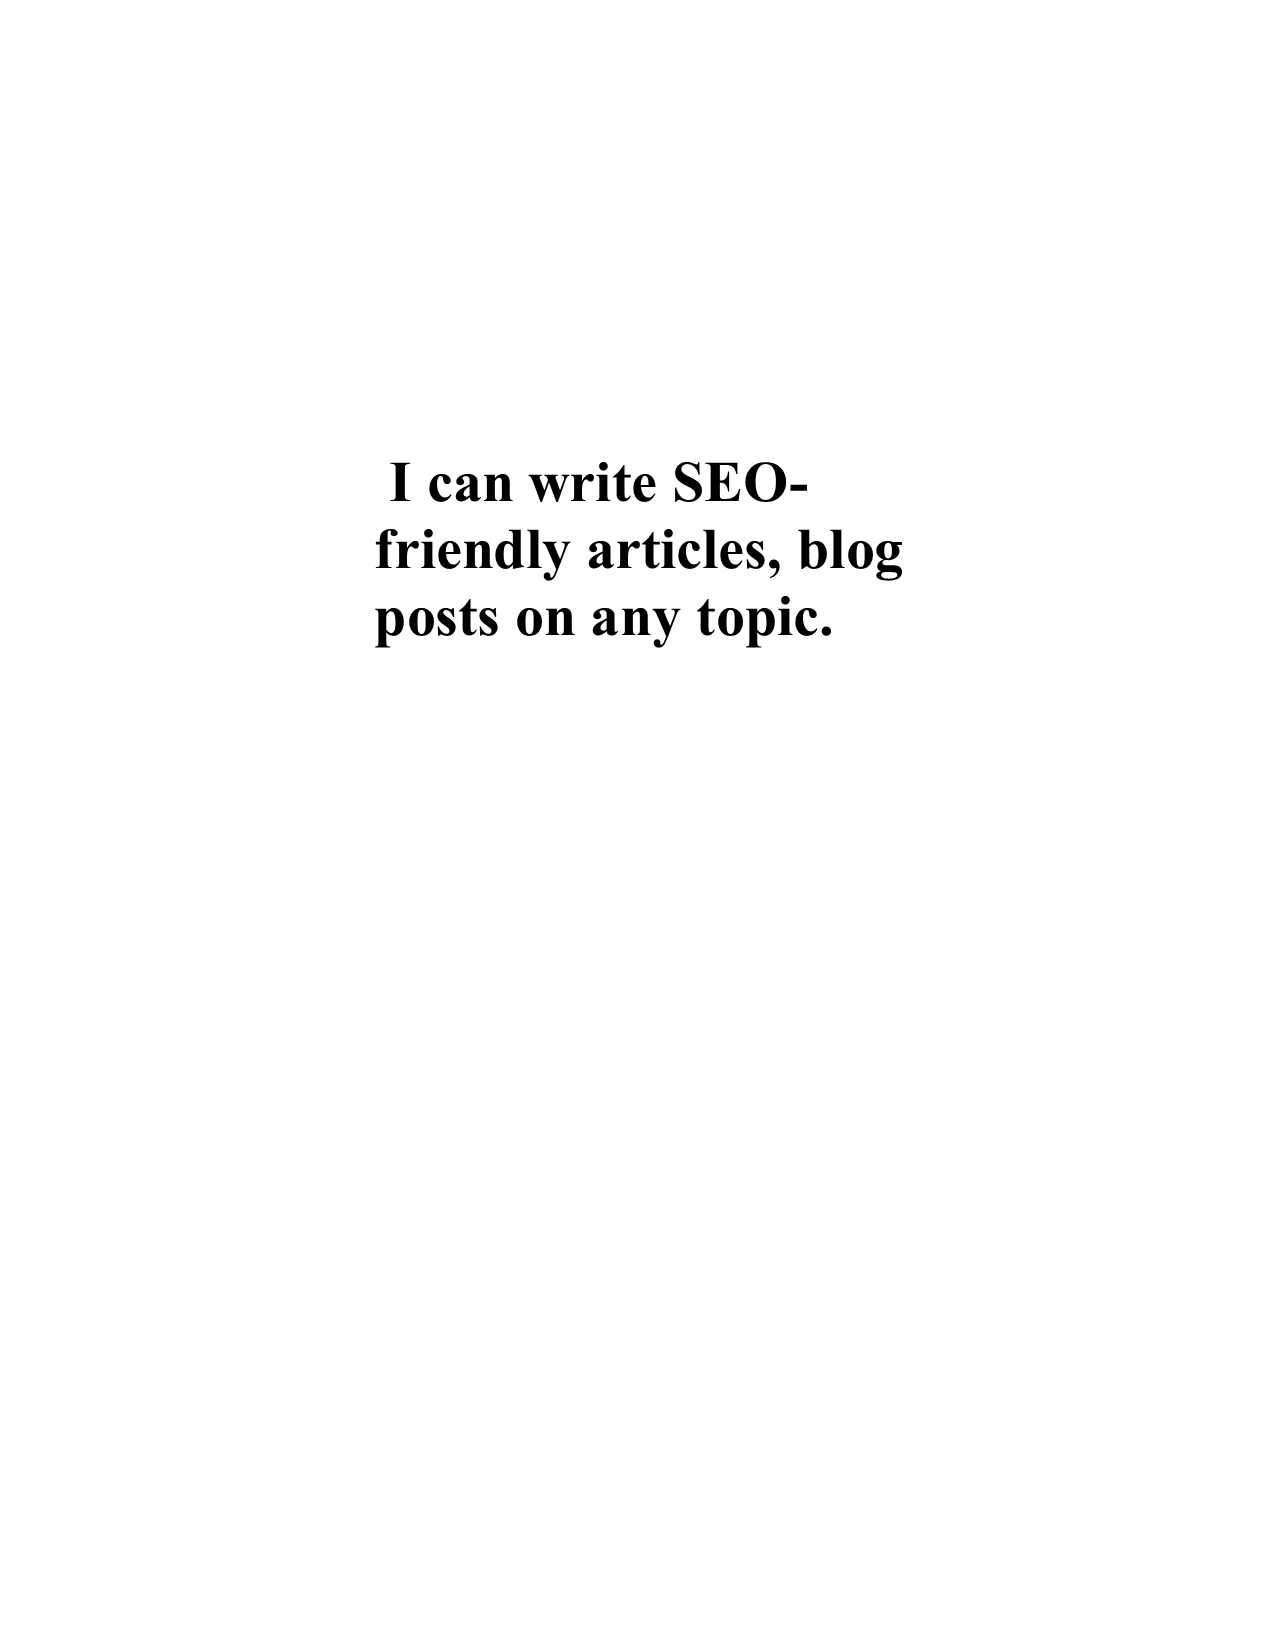 I can write SEO-friendly articles,  Blog posts,  contents on any given topic